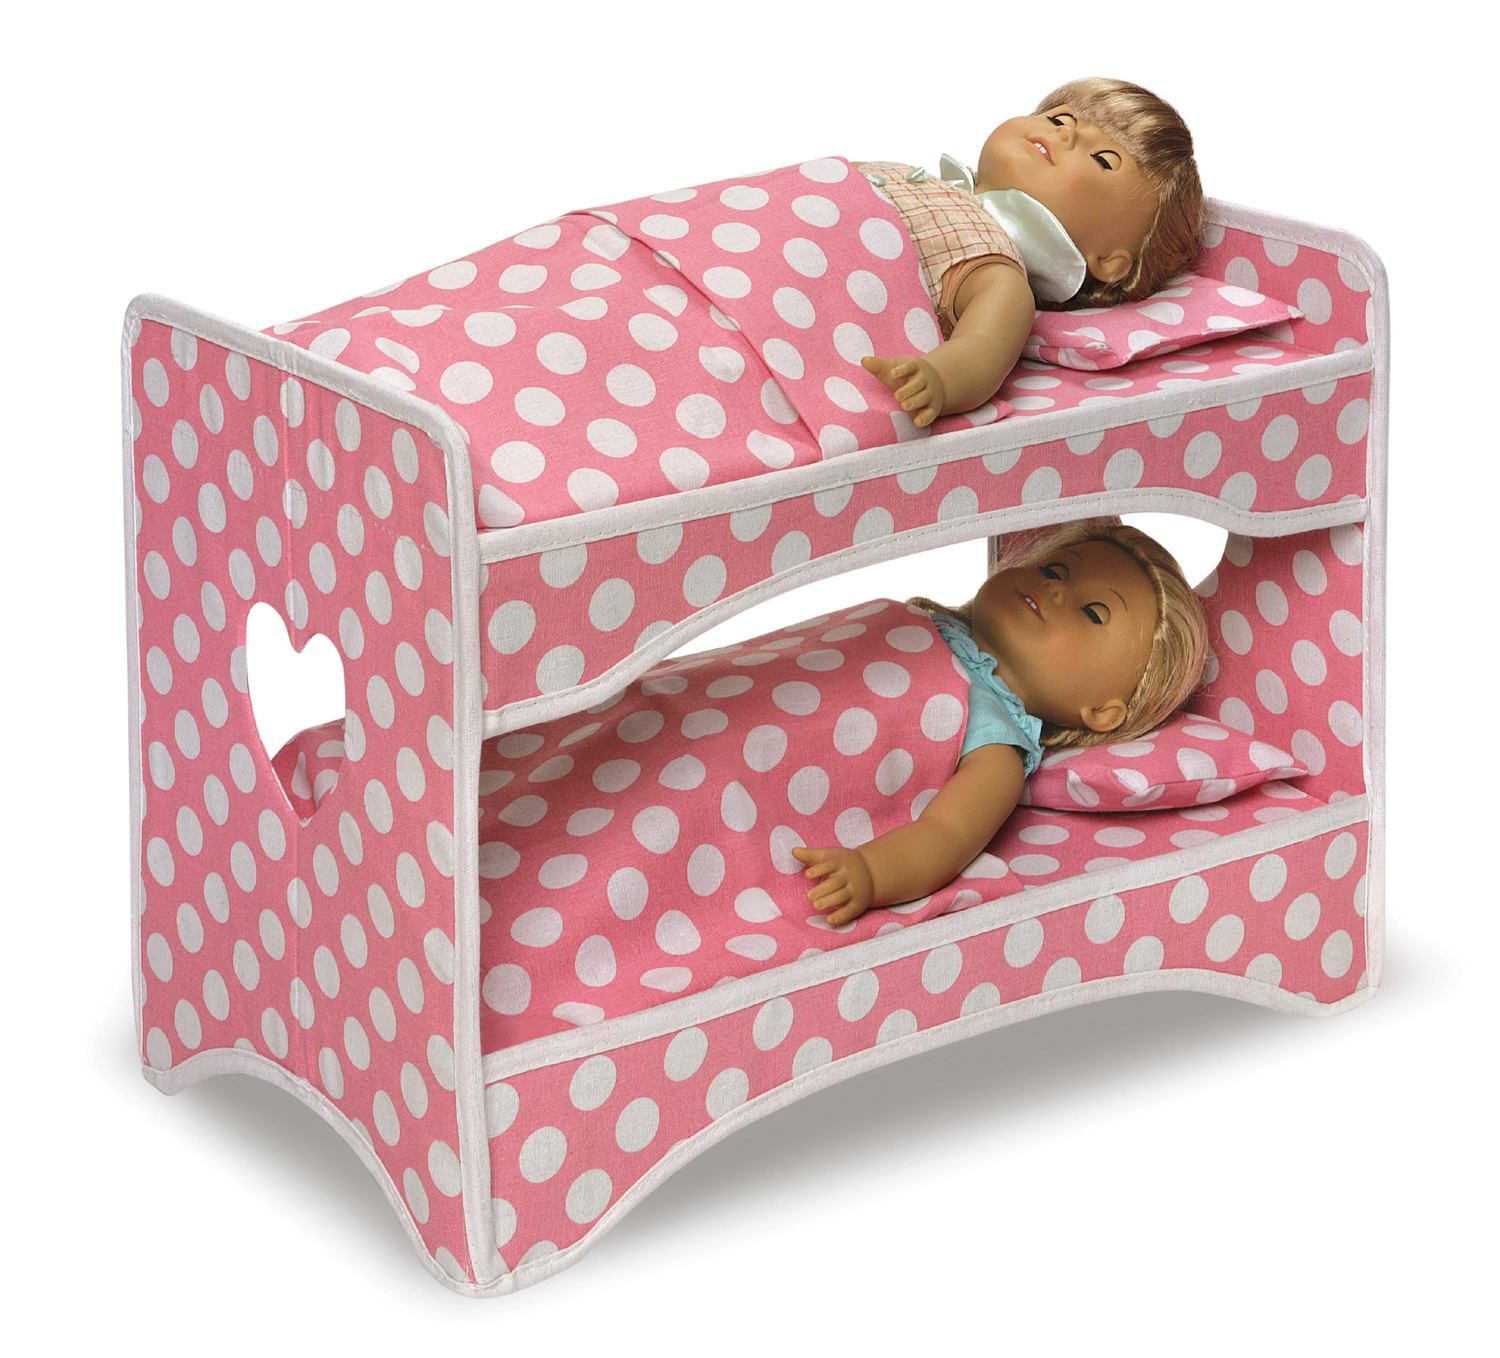 18 doll furniture kits